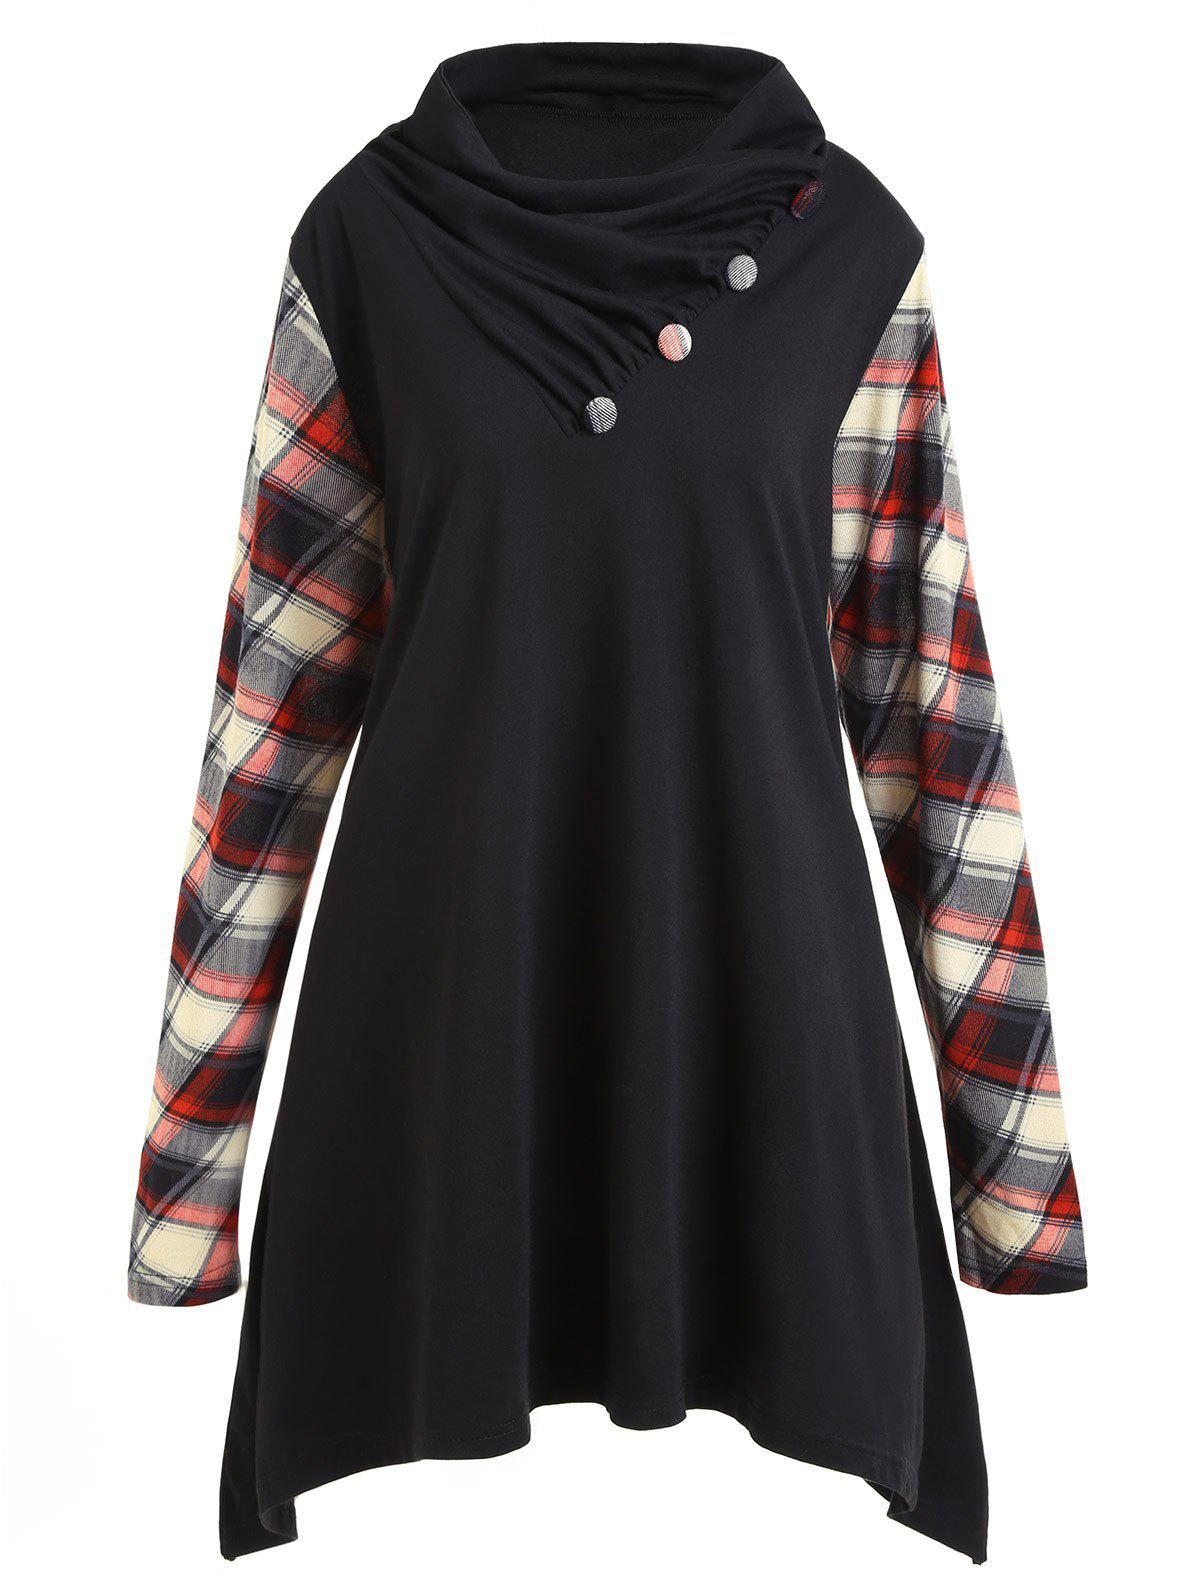 Plus Size Plaid Panel Heap Collar Tunic TopWOMEN<br><br>Size: 3XL; Color: BLACK; Material: Polyester,Spandex; Shirt Length: Long; Sleeve Length: Full; Collar: Heaps Collar; Style: Casual; Season: Fall,Spring; Embellishment: Button; Pattern Type: Plaid; Weight: 0.4200kg; Package Contents: 1 x Top;